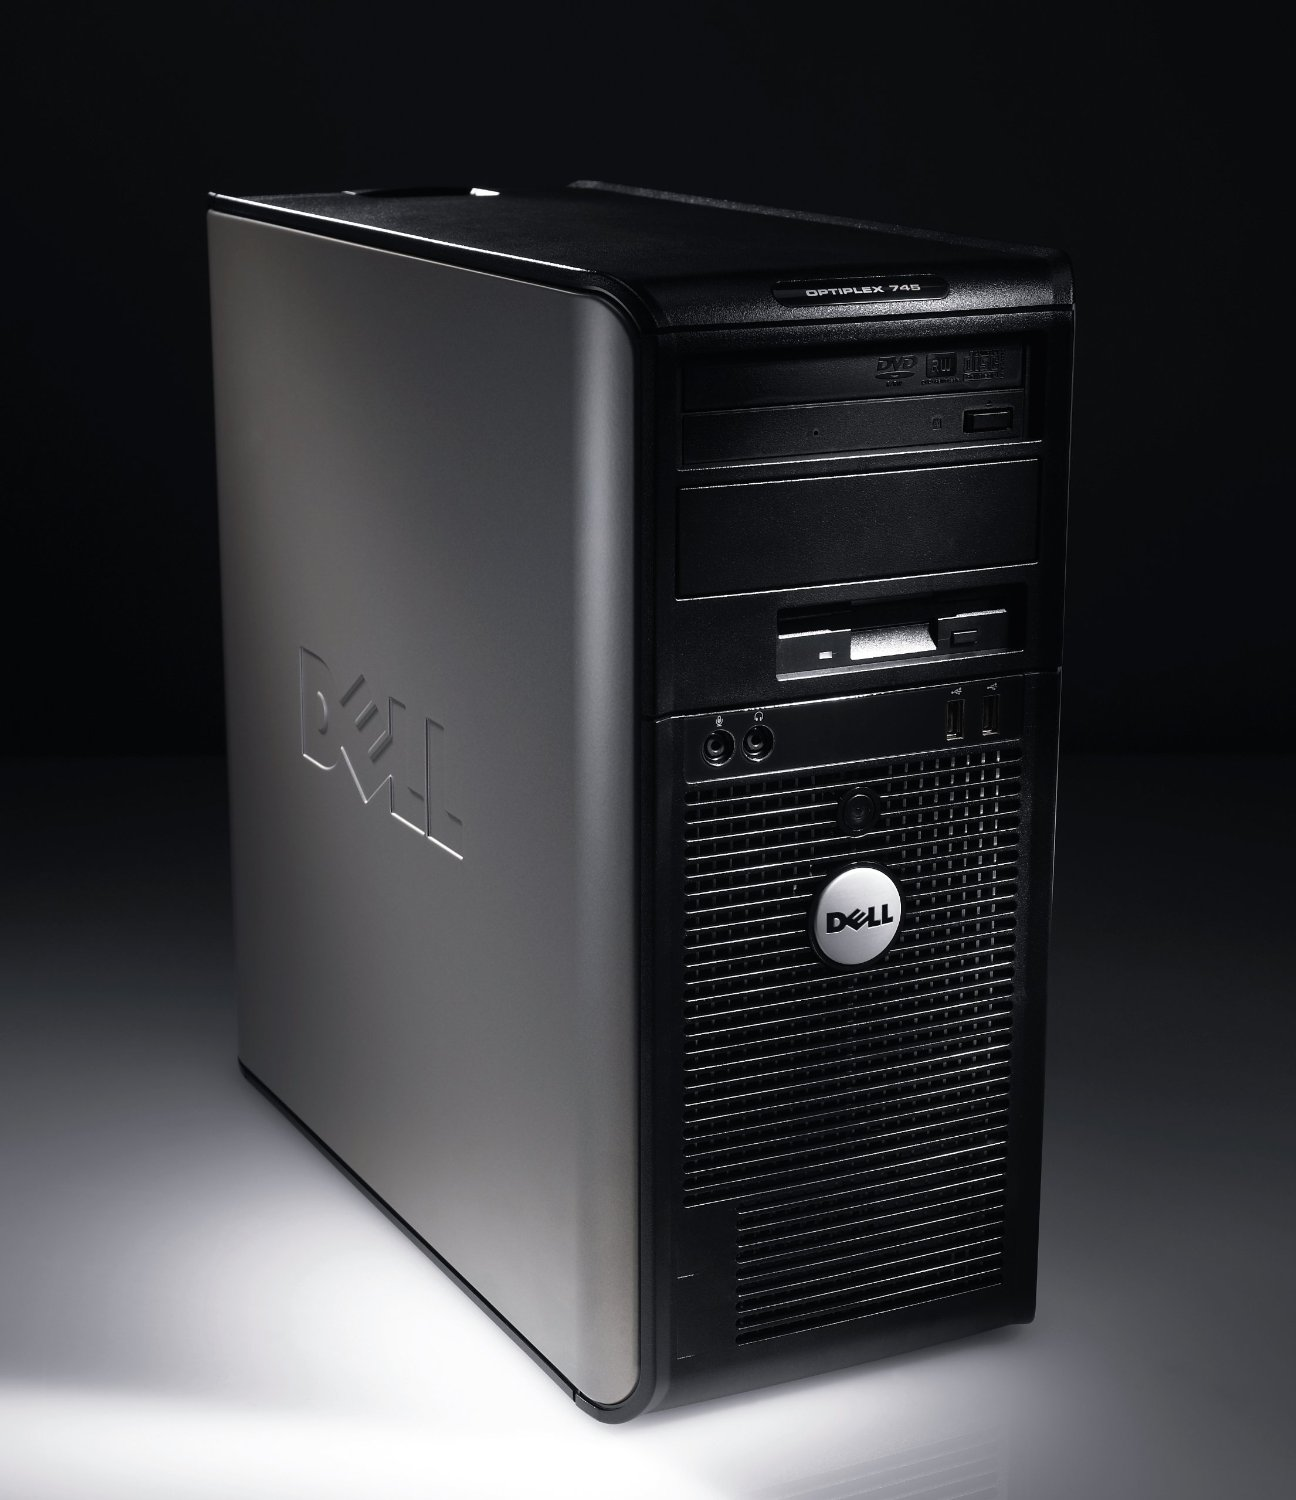 Fast Dell Optiplex Gx620 Tower Desktop Computer Pentium 4HT 3.2Ghz, 2GB/750GB/DVD-Rom Keyboard/Mouse/Recovery CD included